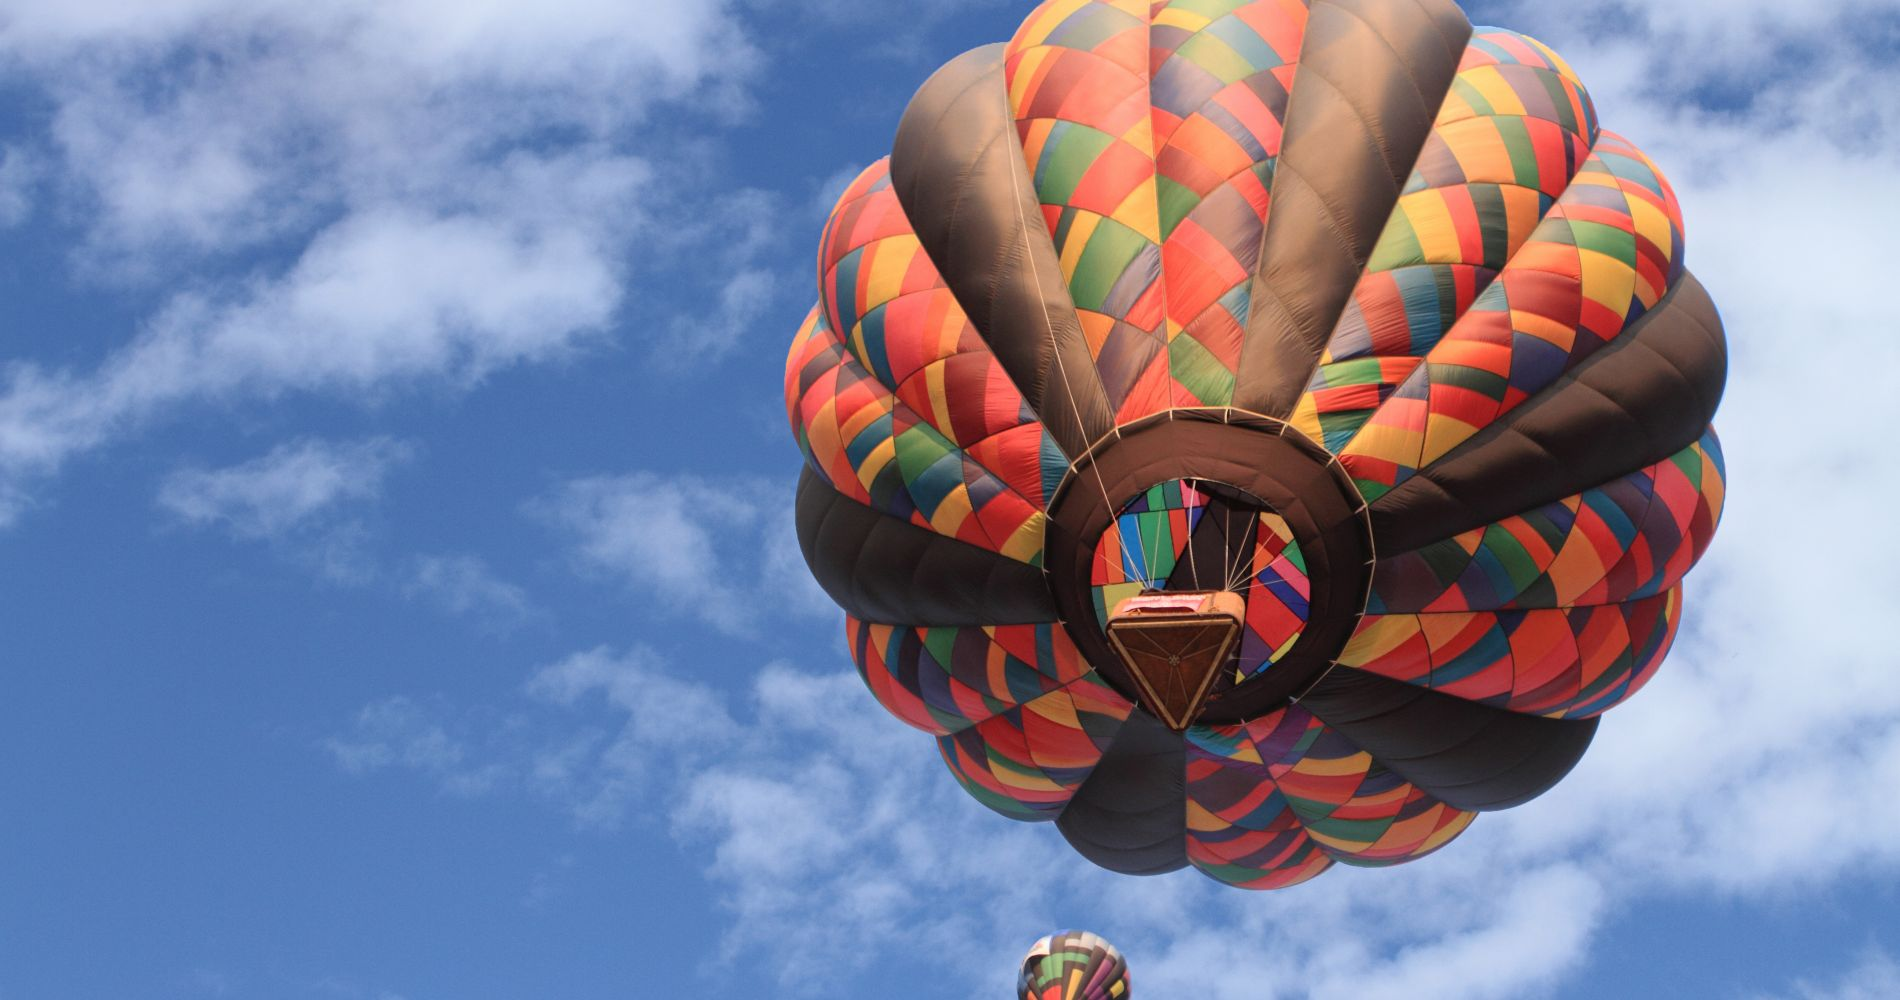 Hot Air Balloon Ride in Texas, McKinney